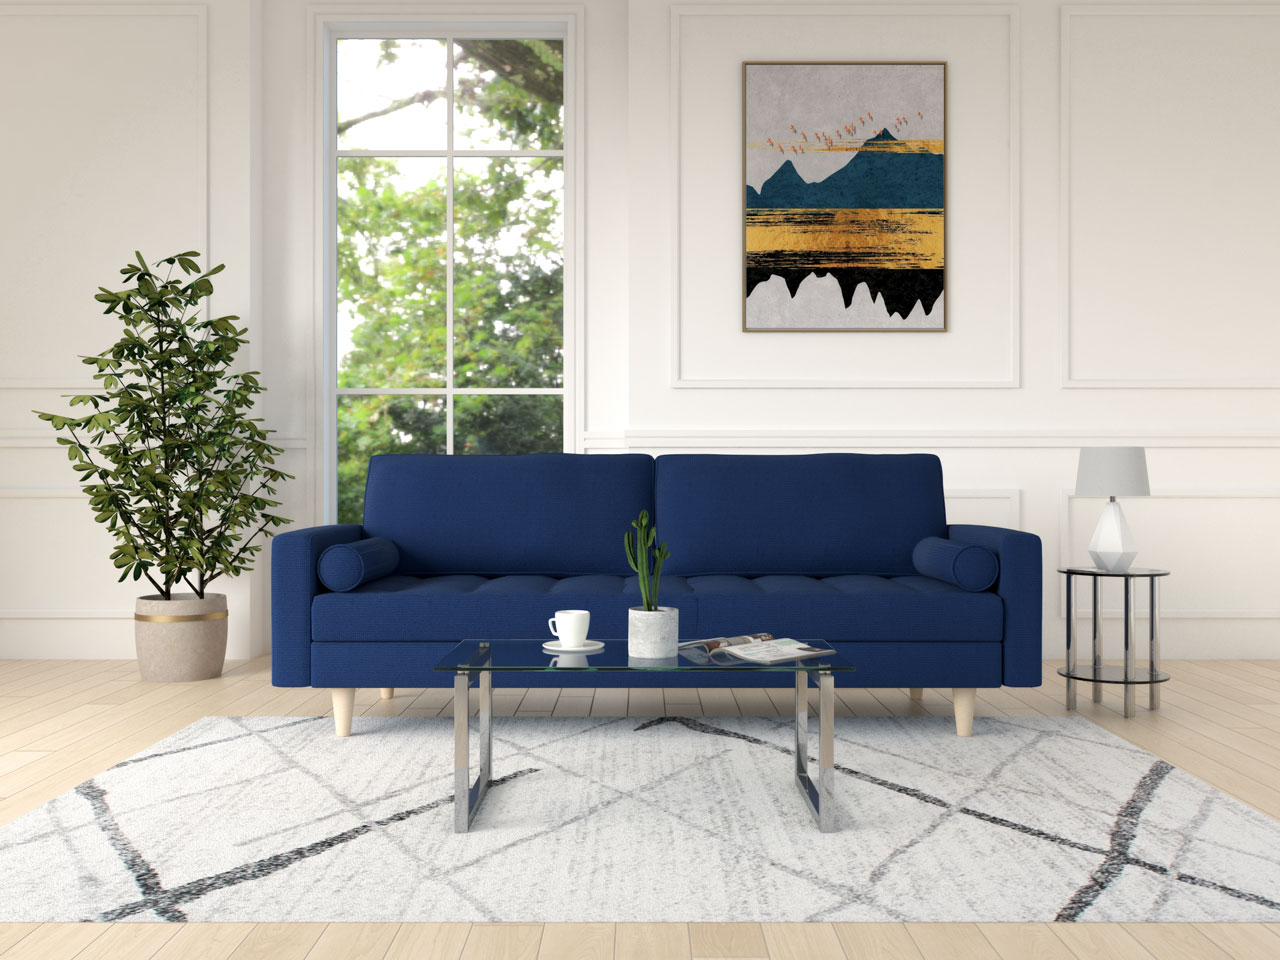 Blue couch with a glass coffee table